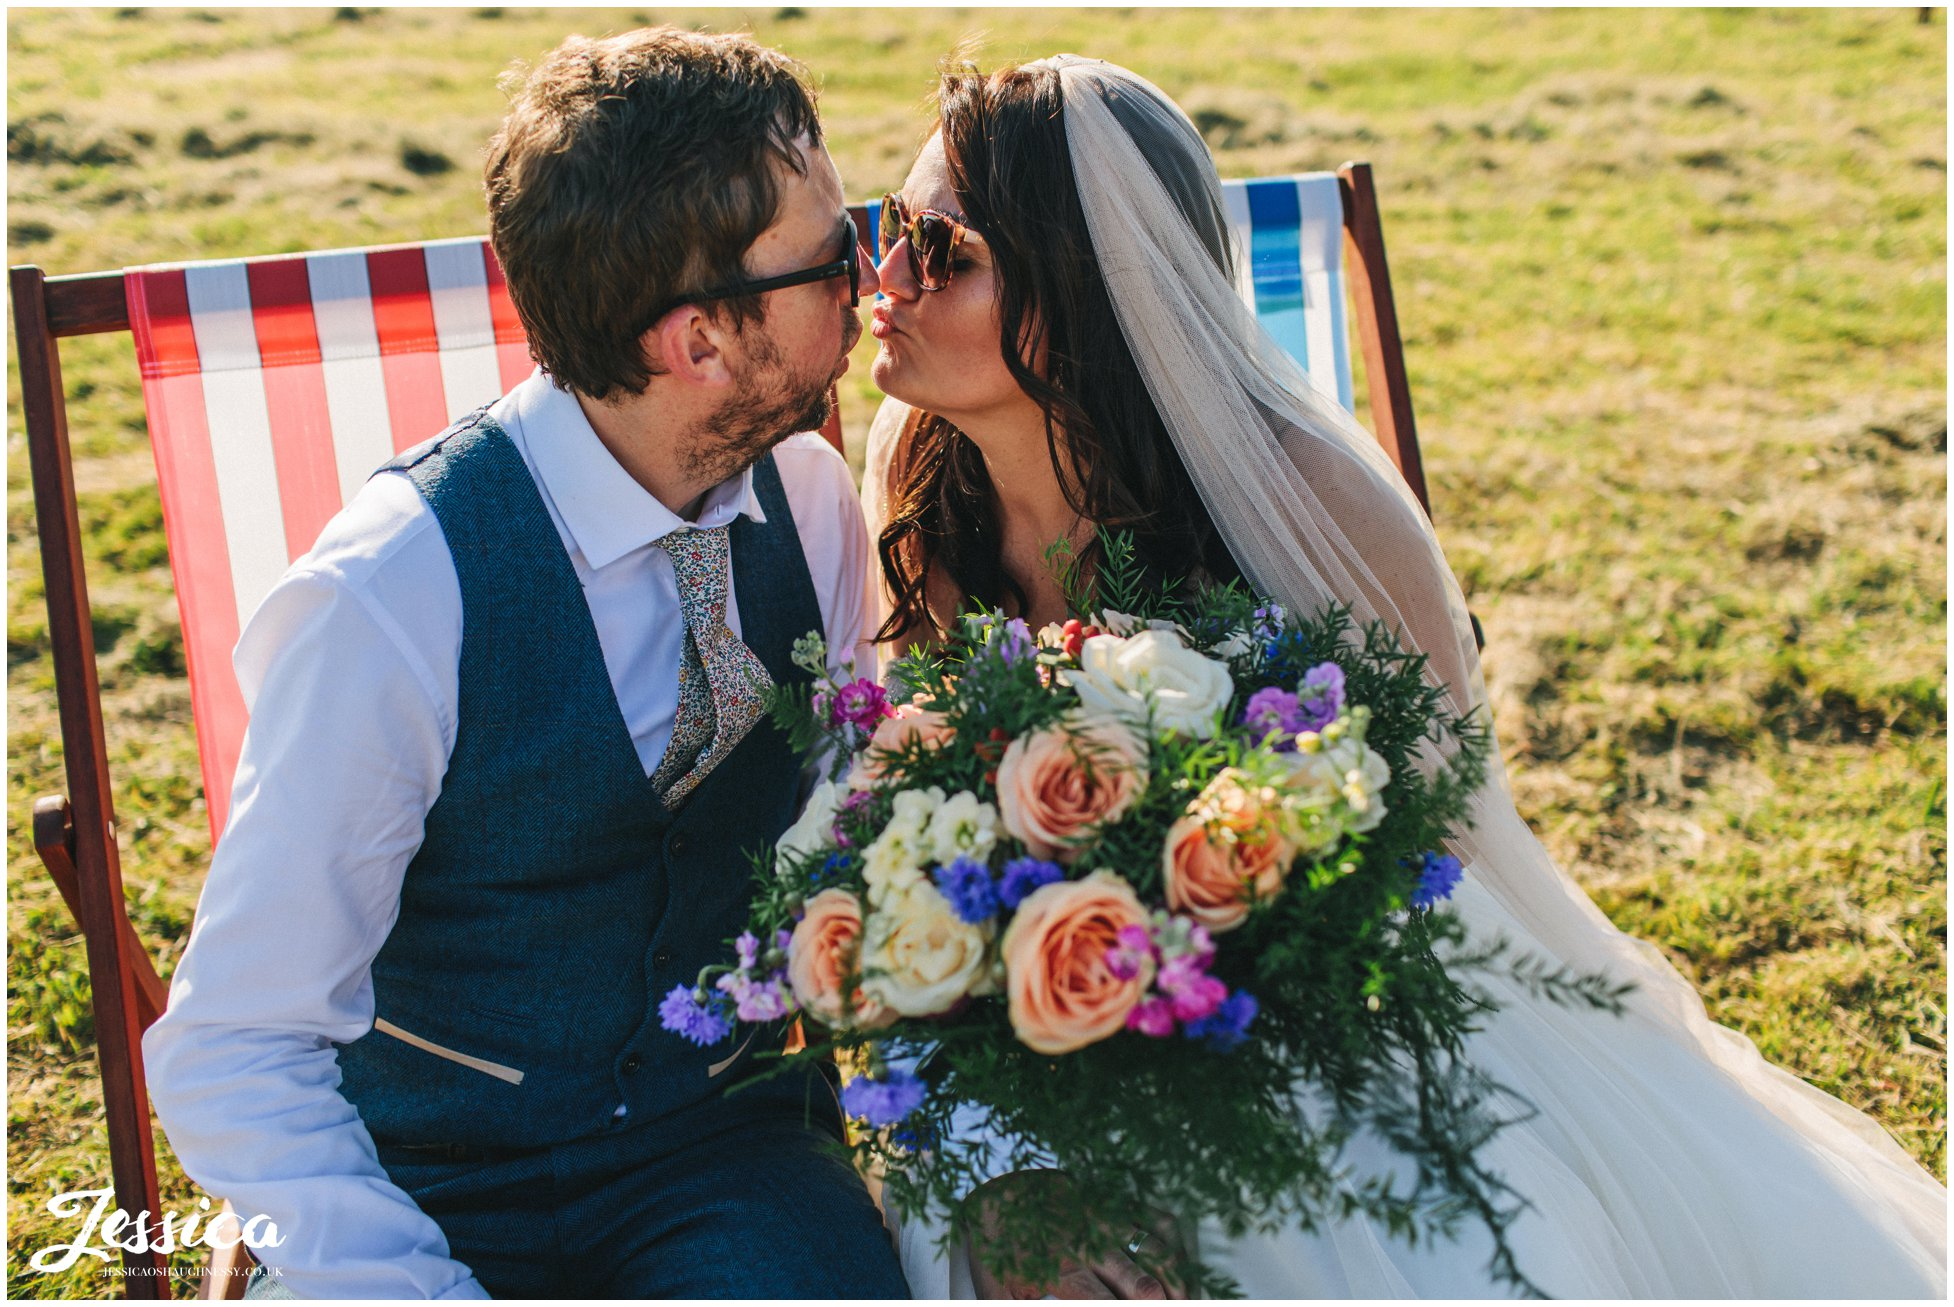 bride & groom pose on the deck chairs with sunglasses on